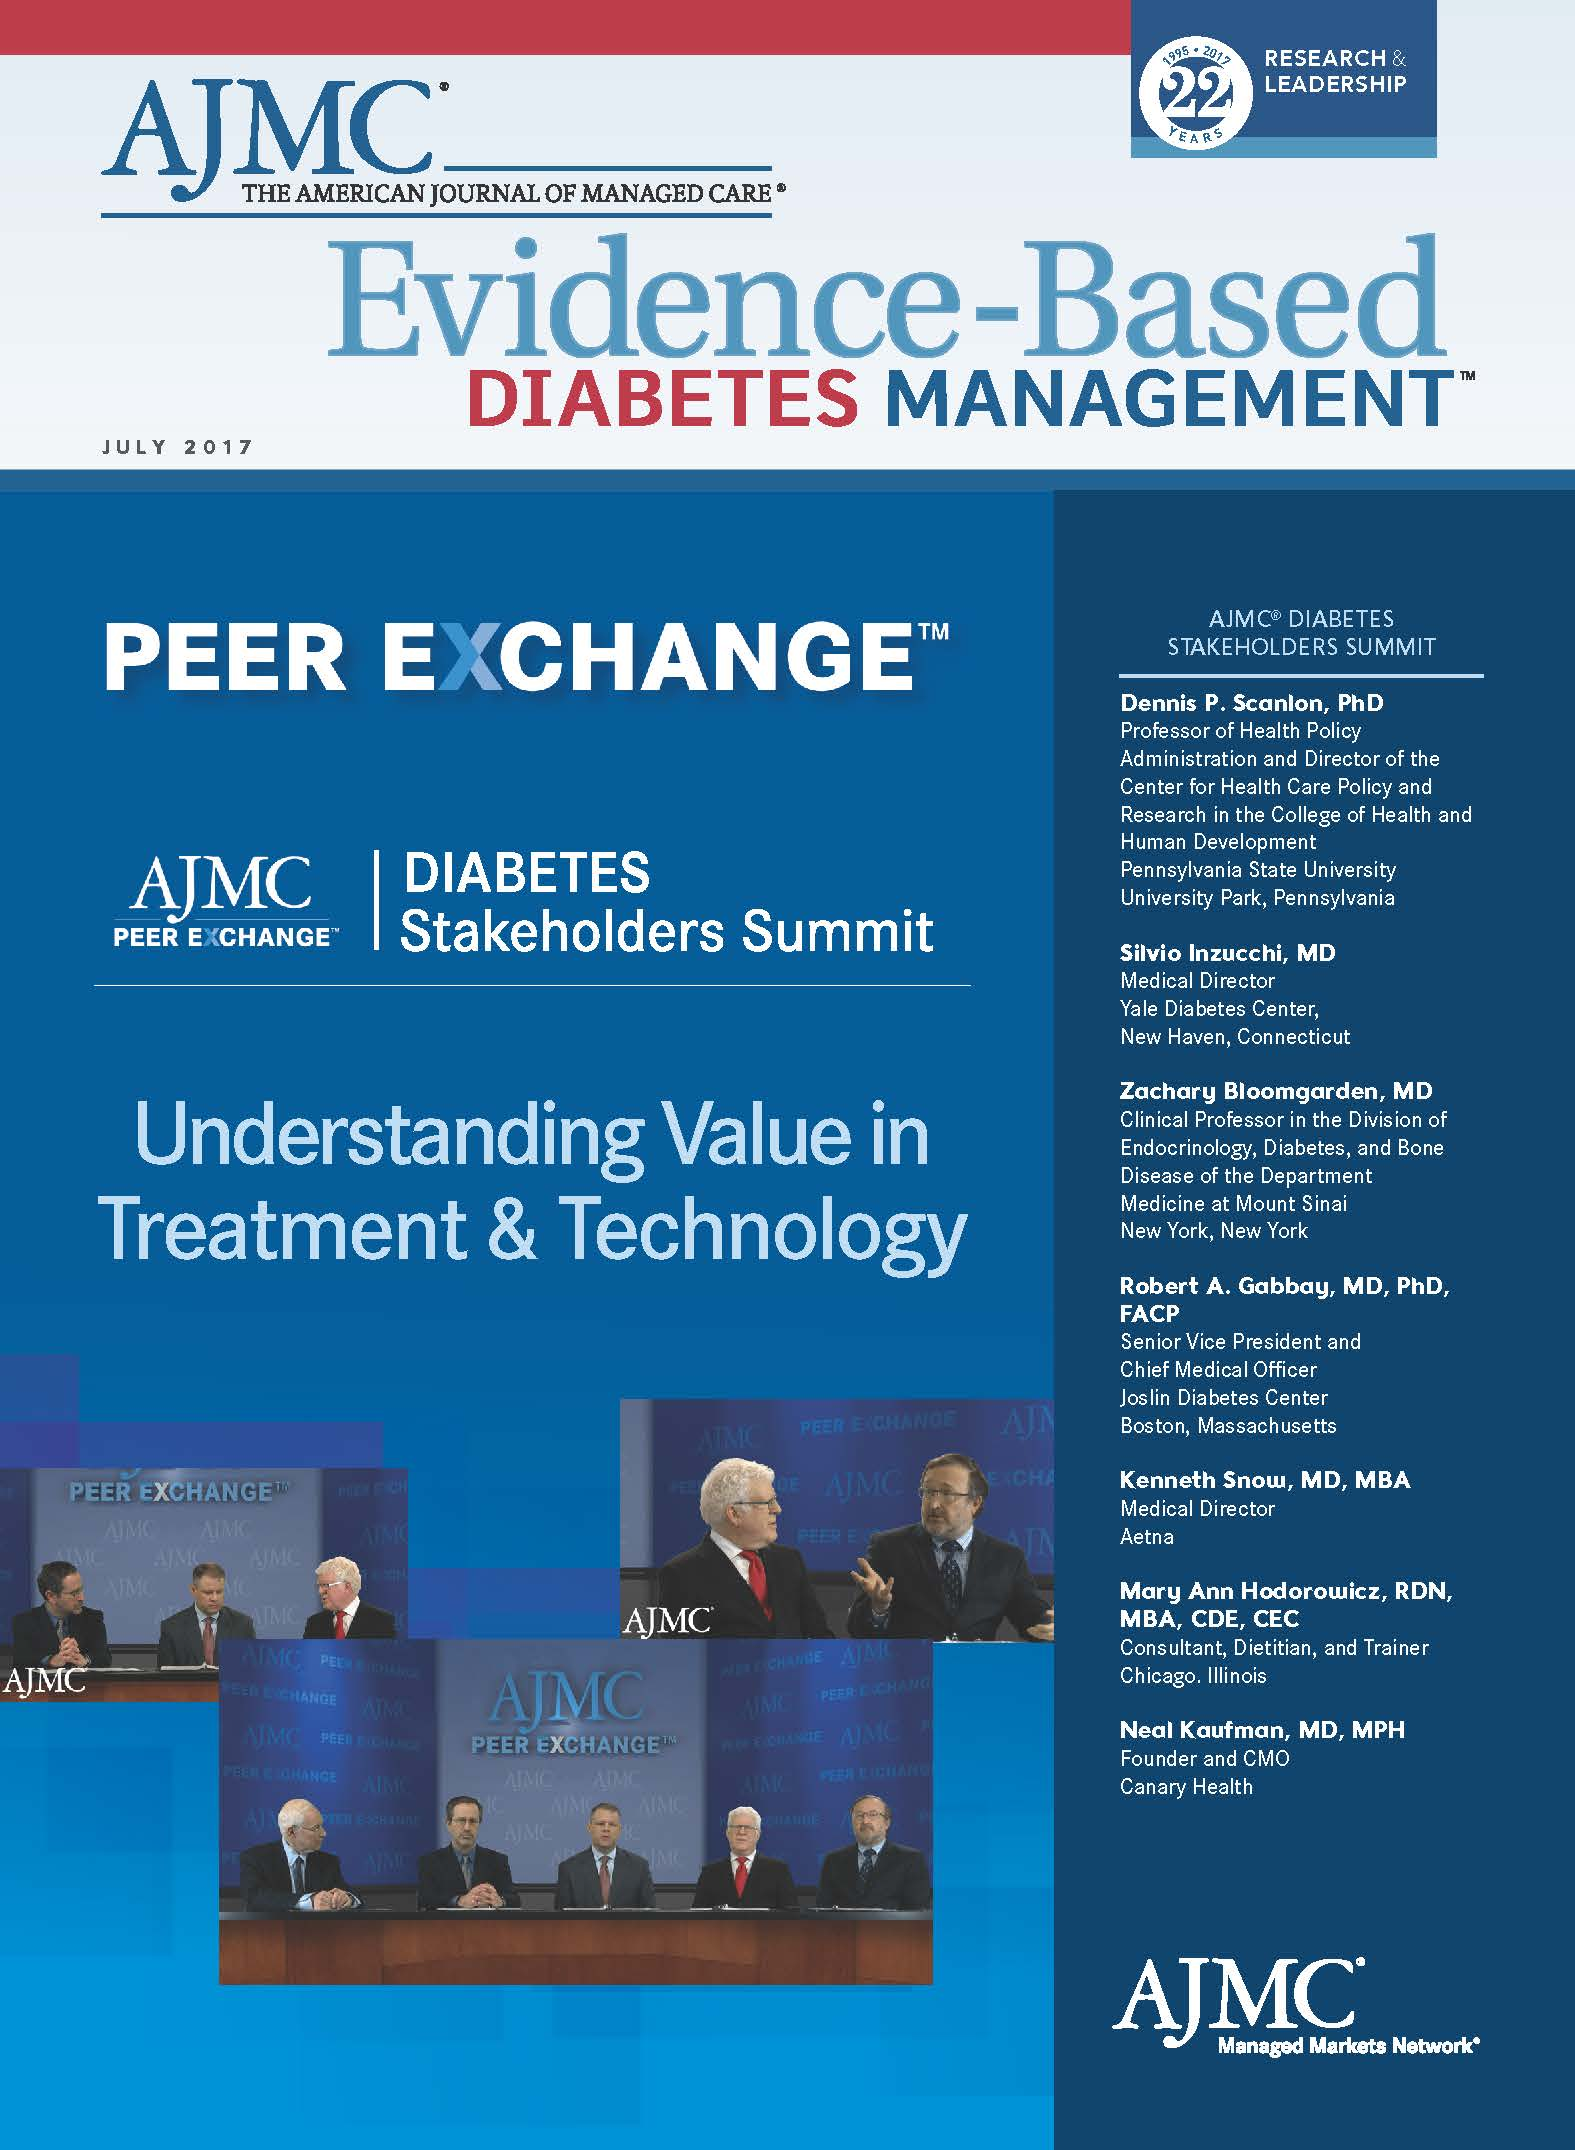 Peer Exchange: Diabetes Stakeholders Summit